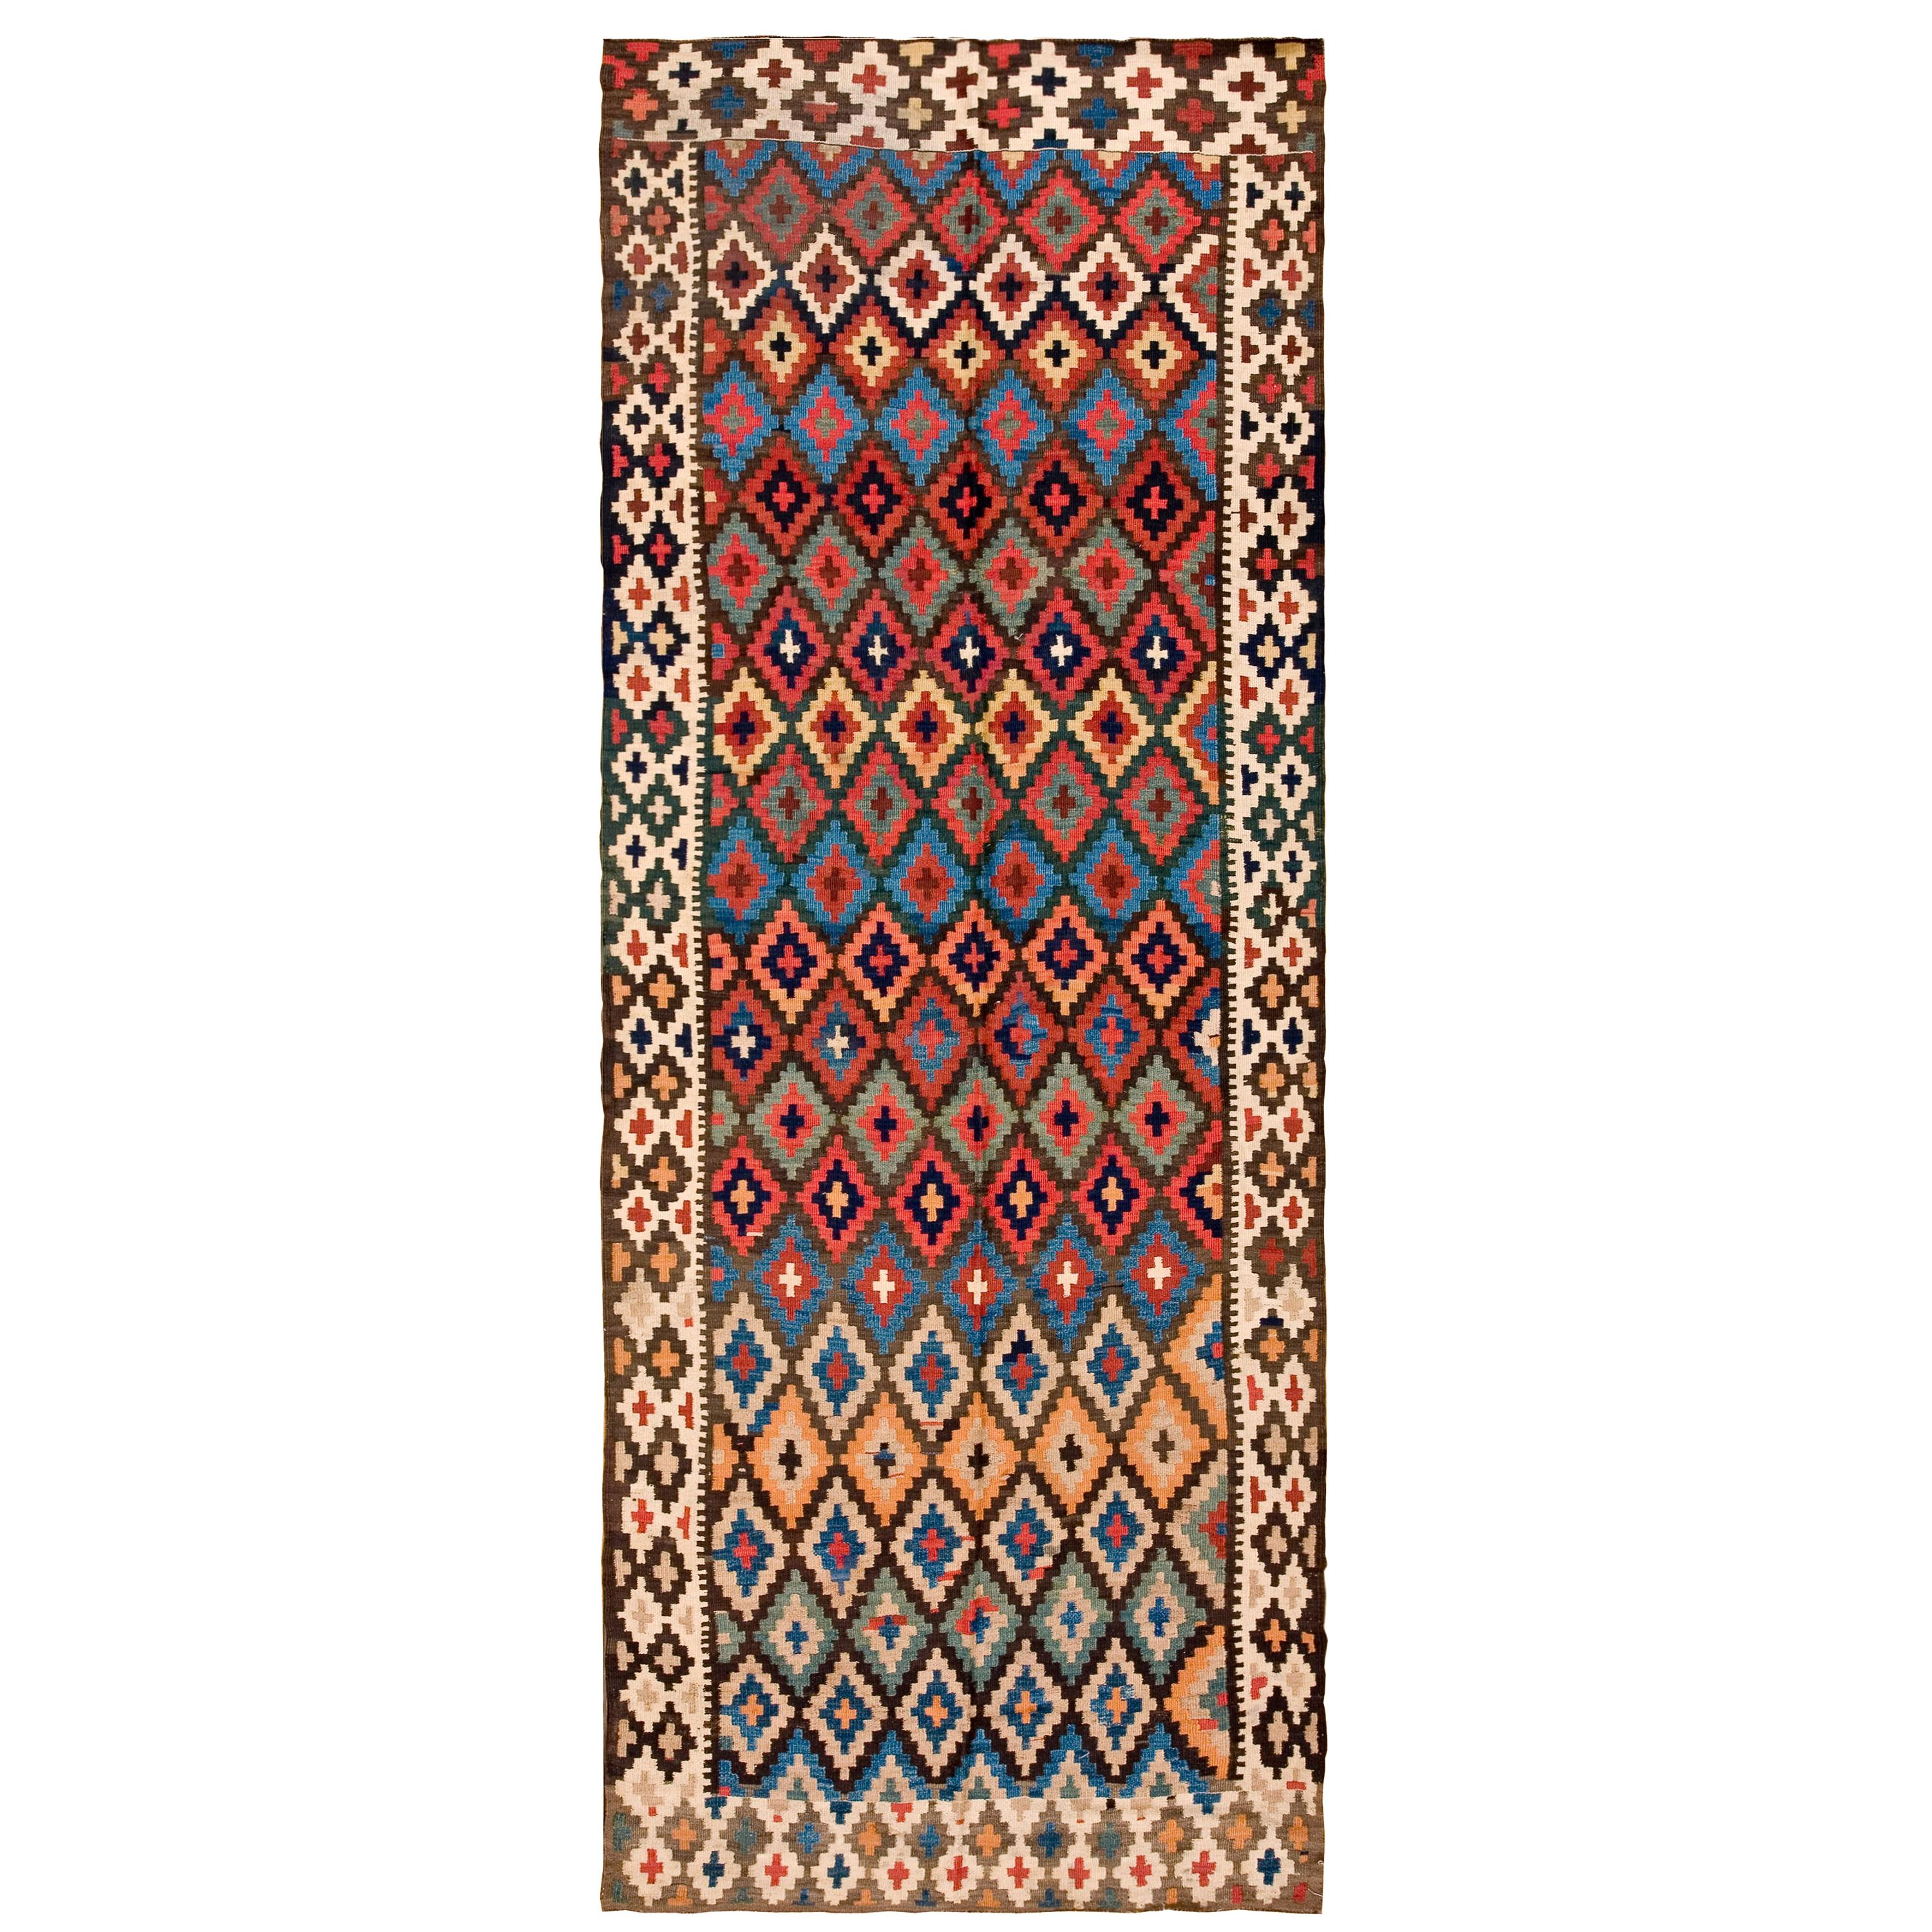 Antique Persian Kilim Rug